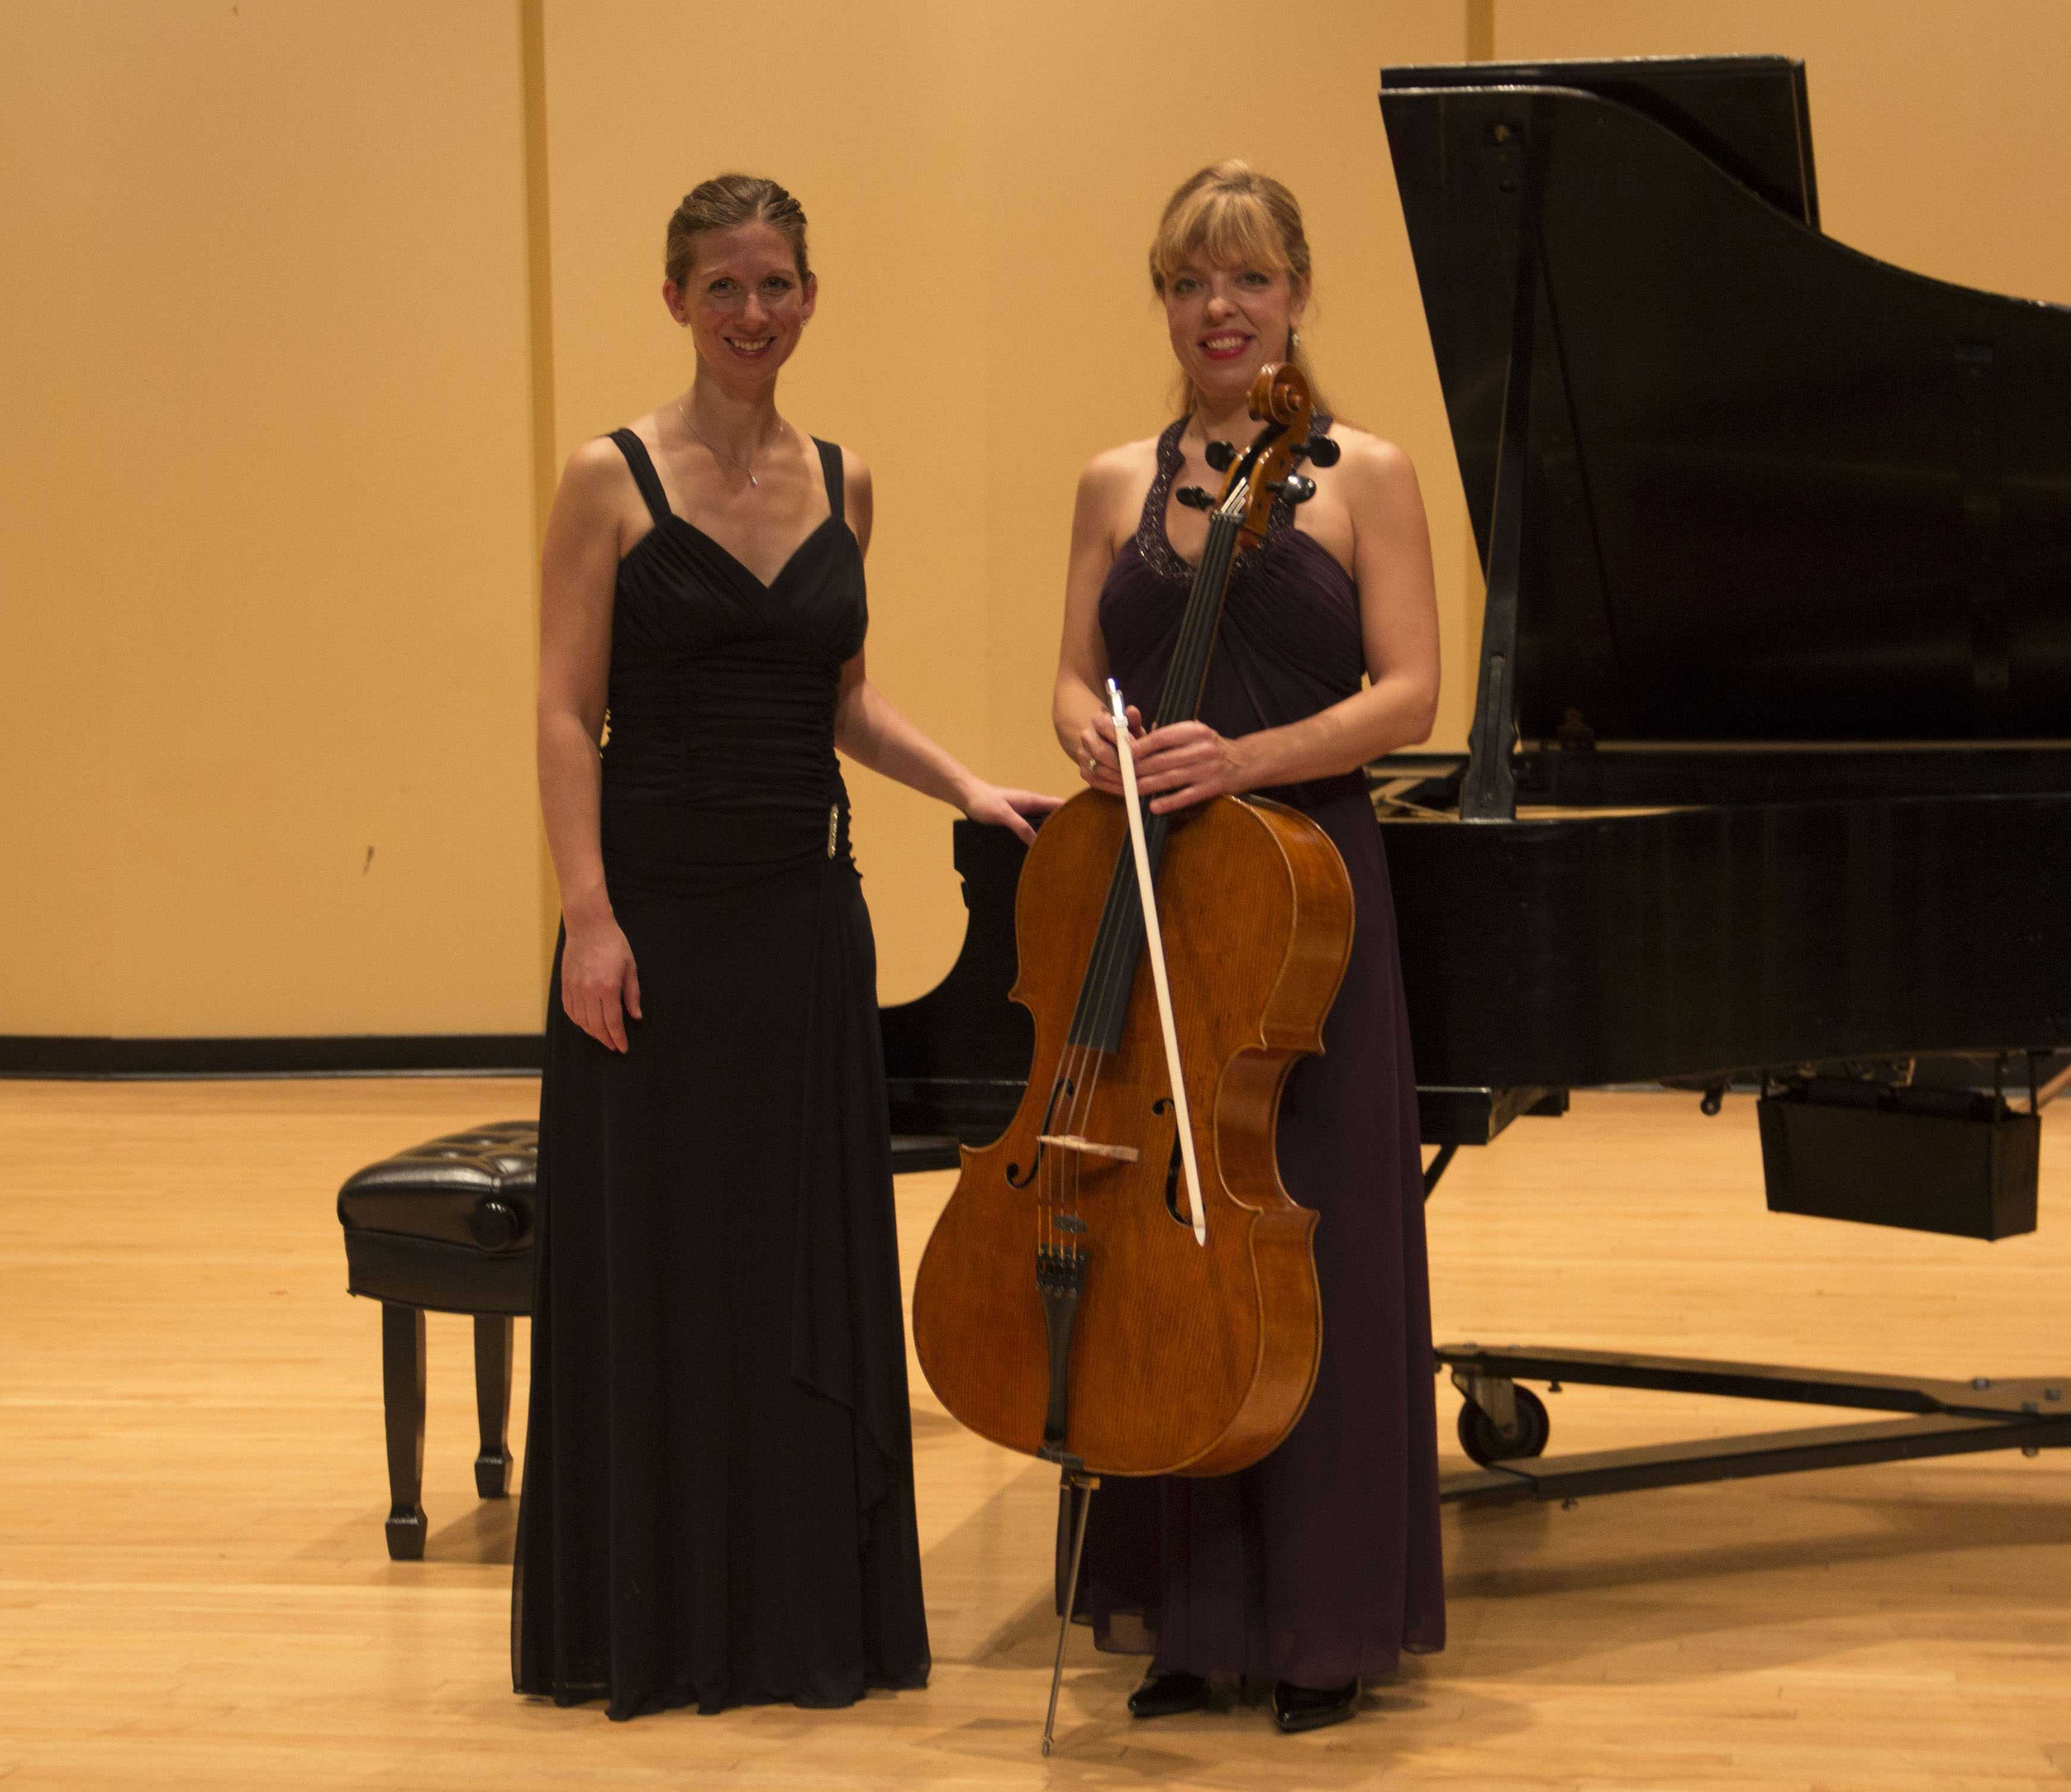 On the left is Sarah Kahl, D.M.A., and on the right is the star of the recital, Robin Hasenpflug.